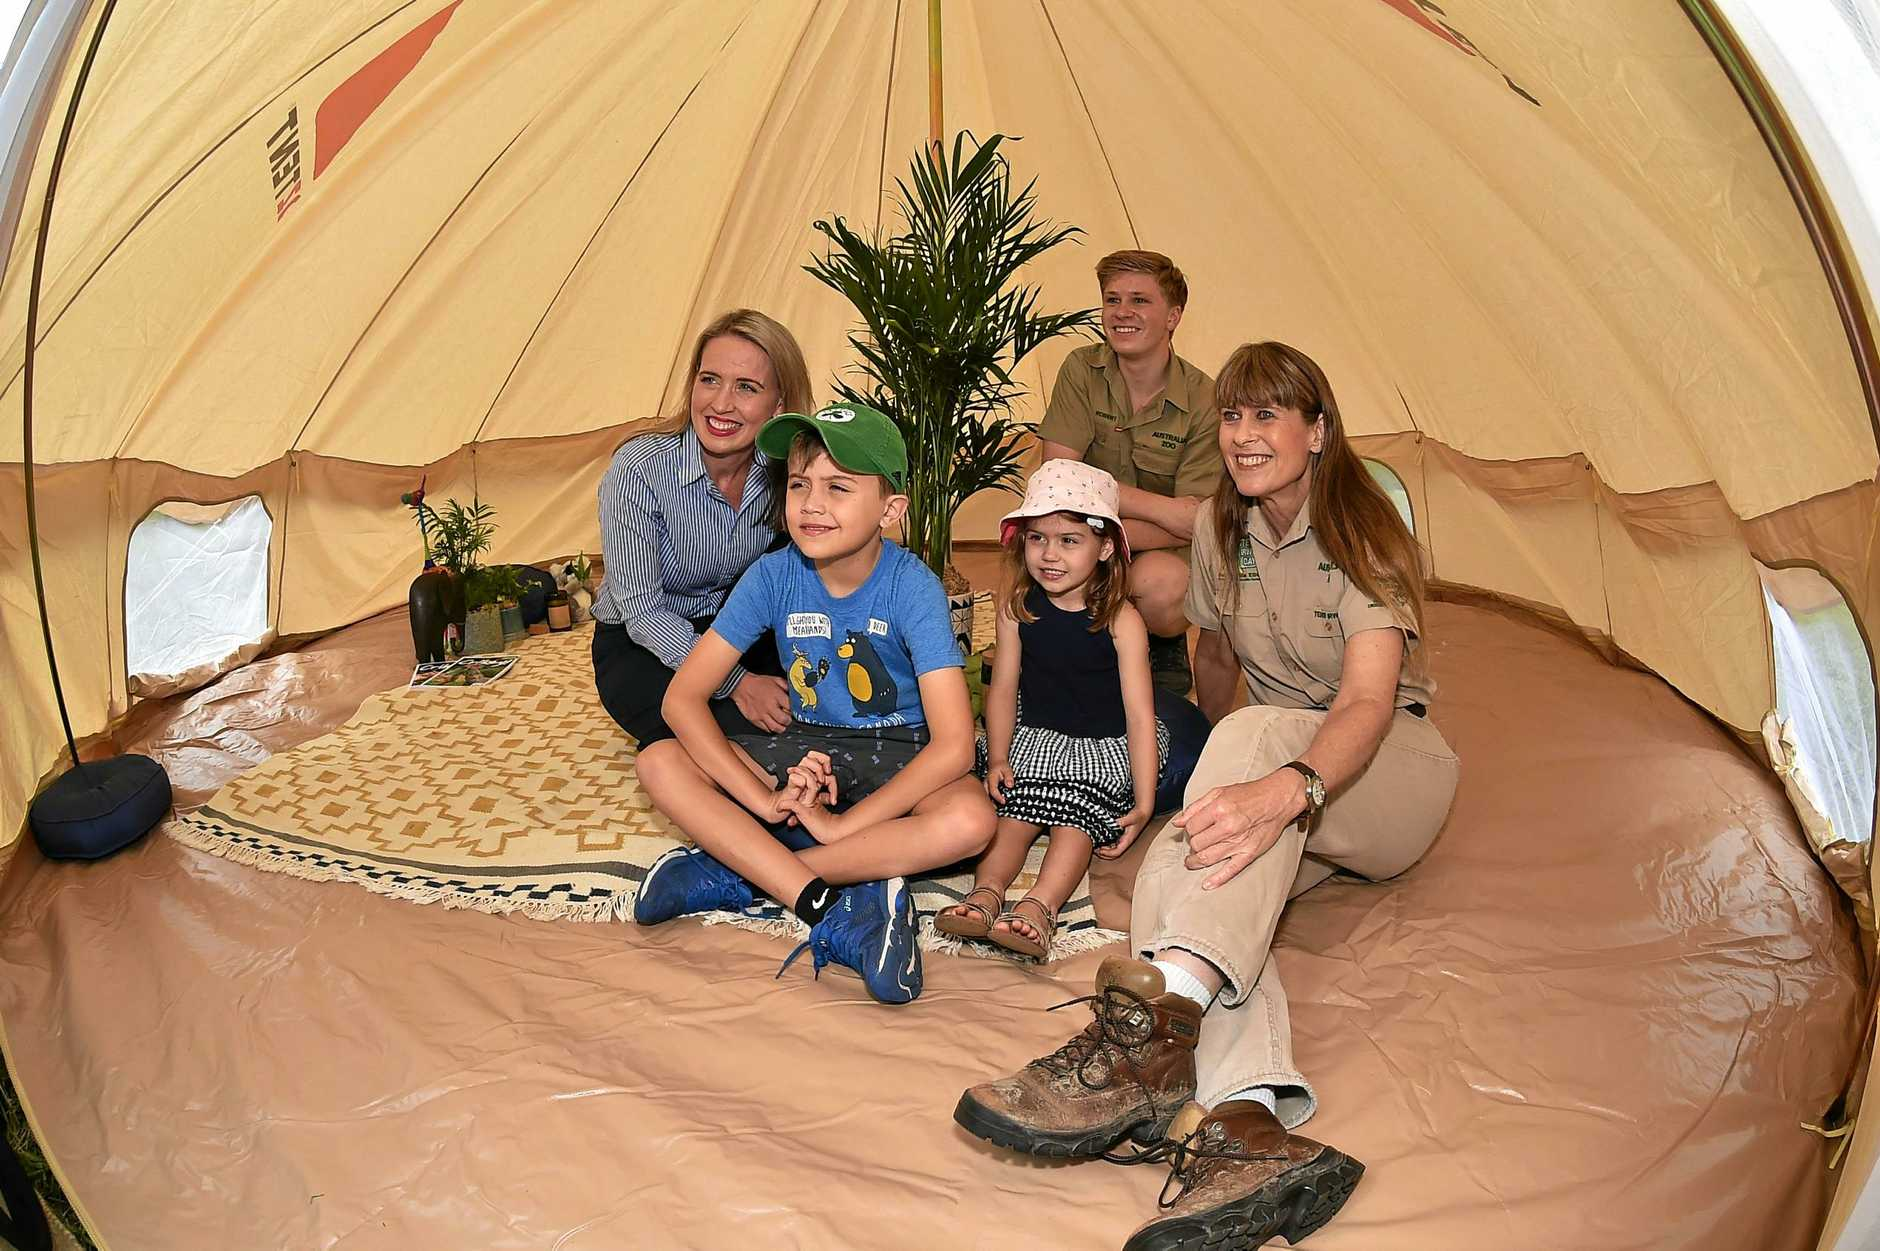 Tourism Industry Development Minister Kate Jones, Tom and Grace Cronin with Robert and Terri Irwin as they check out some of the glamping-style tents.